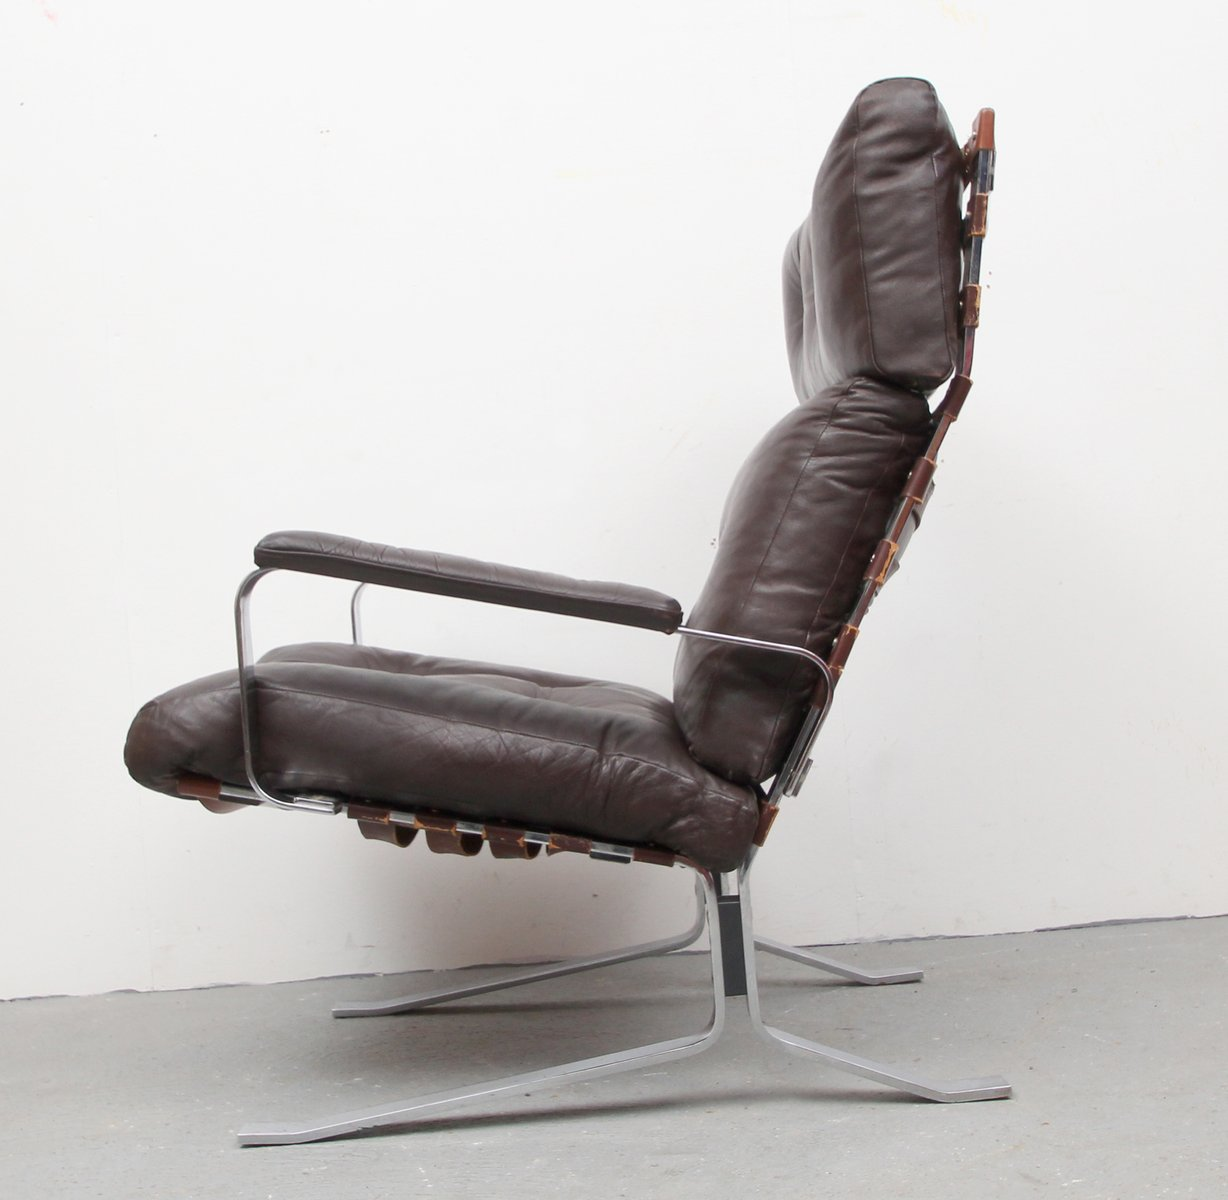 Flat Steel and Leather Lounge Chair 1970s for sale at Pamono